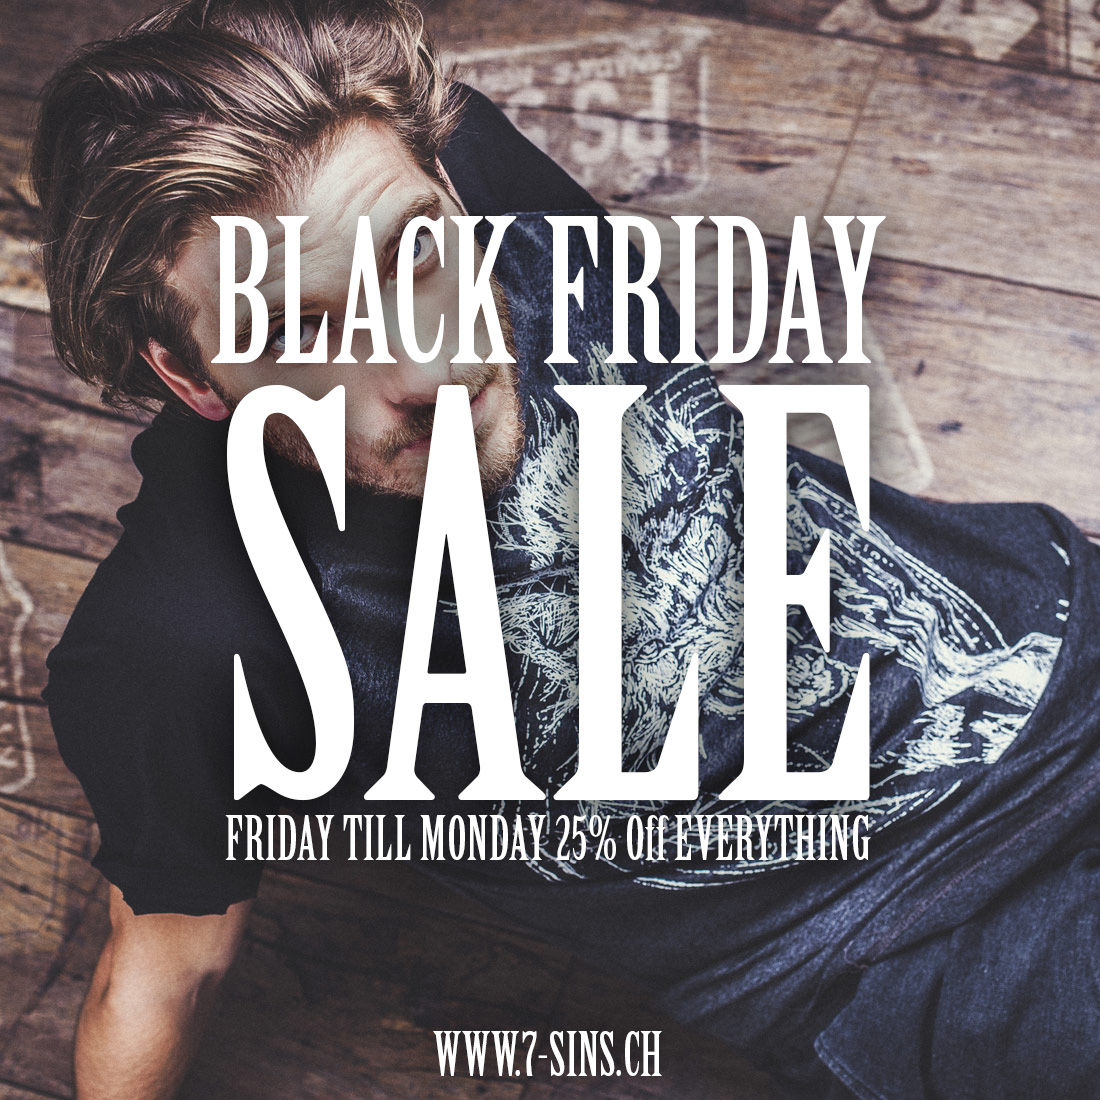 Black Friday Angebot 25 Rabatt Auf Das Gesamte 7sins Sortiment Black Friday